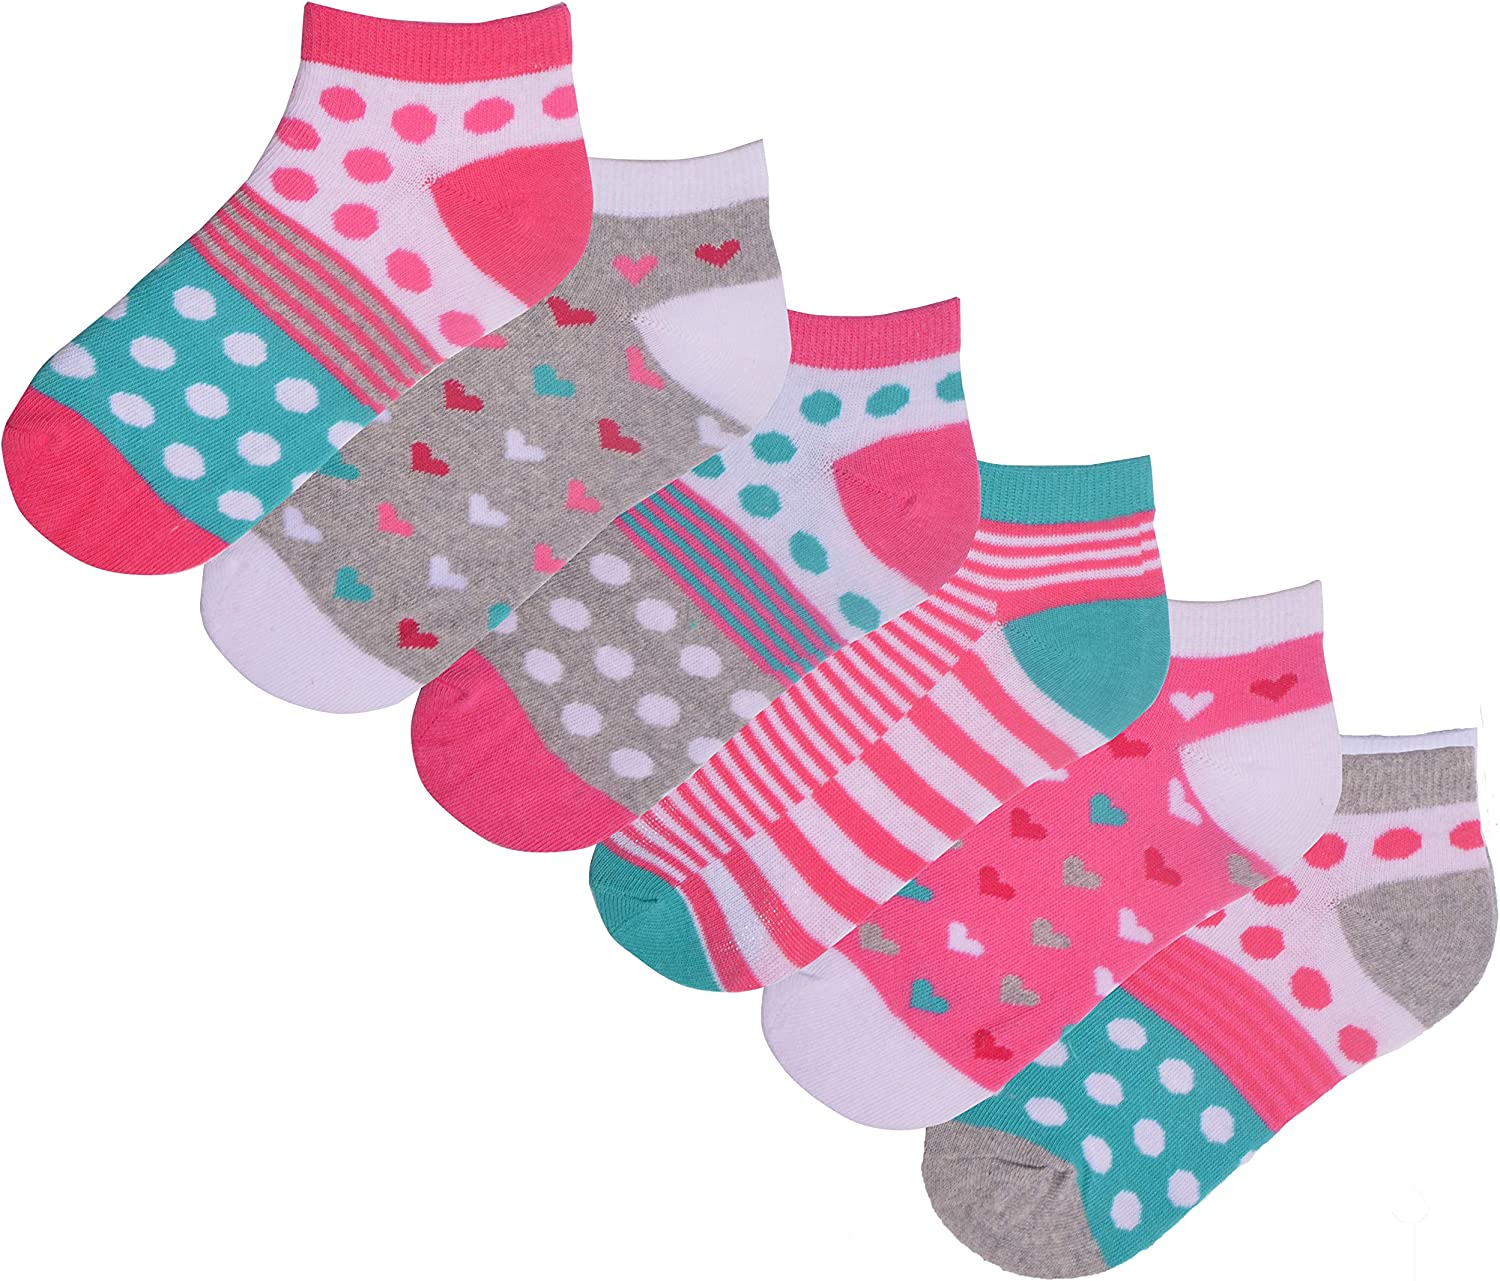 Girls 6 Pack Trainer Liner Socks Flamingo Design Spots Stripes Cotton Rich Grey Pink White Trainer Liners